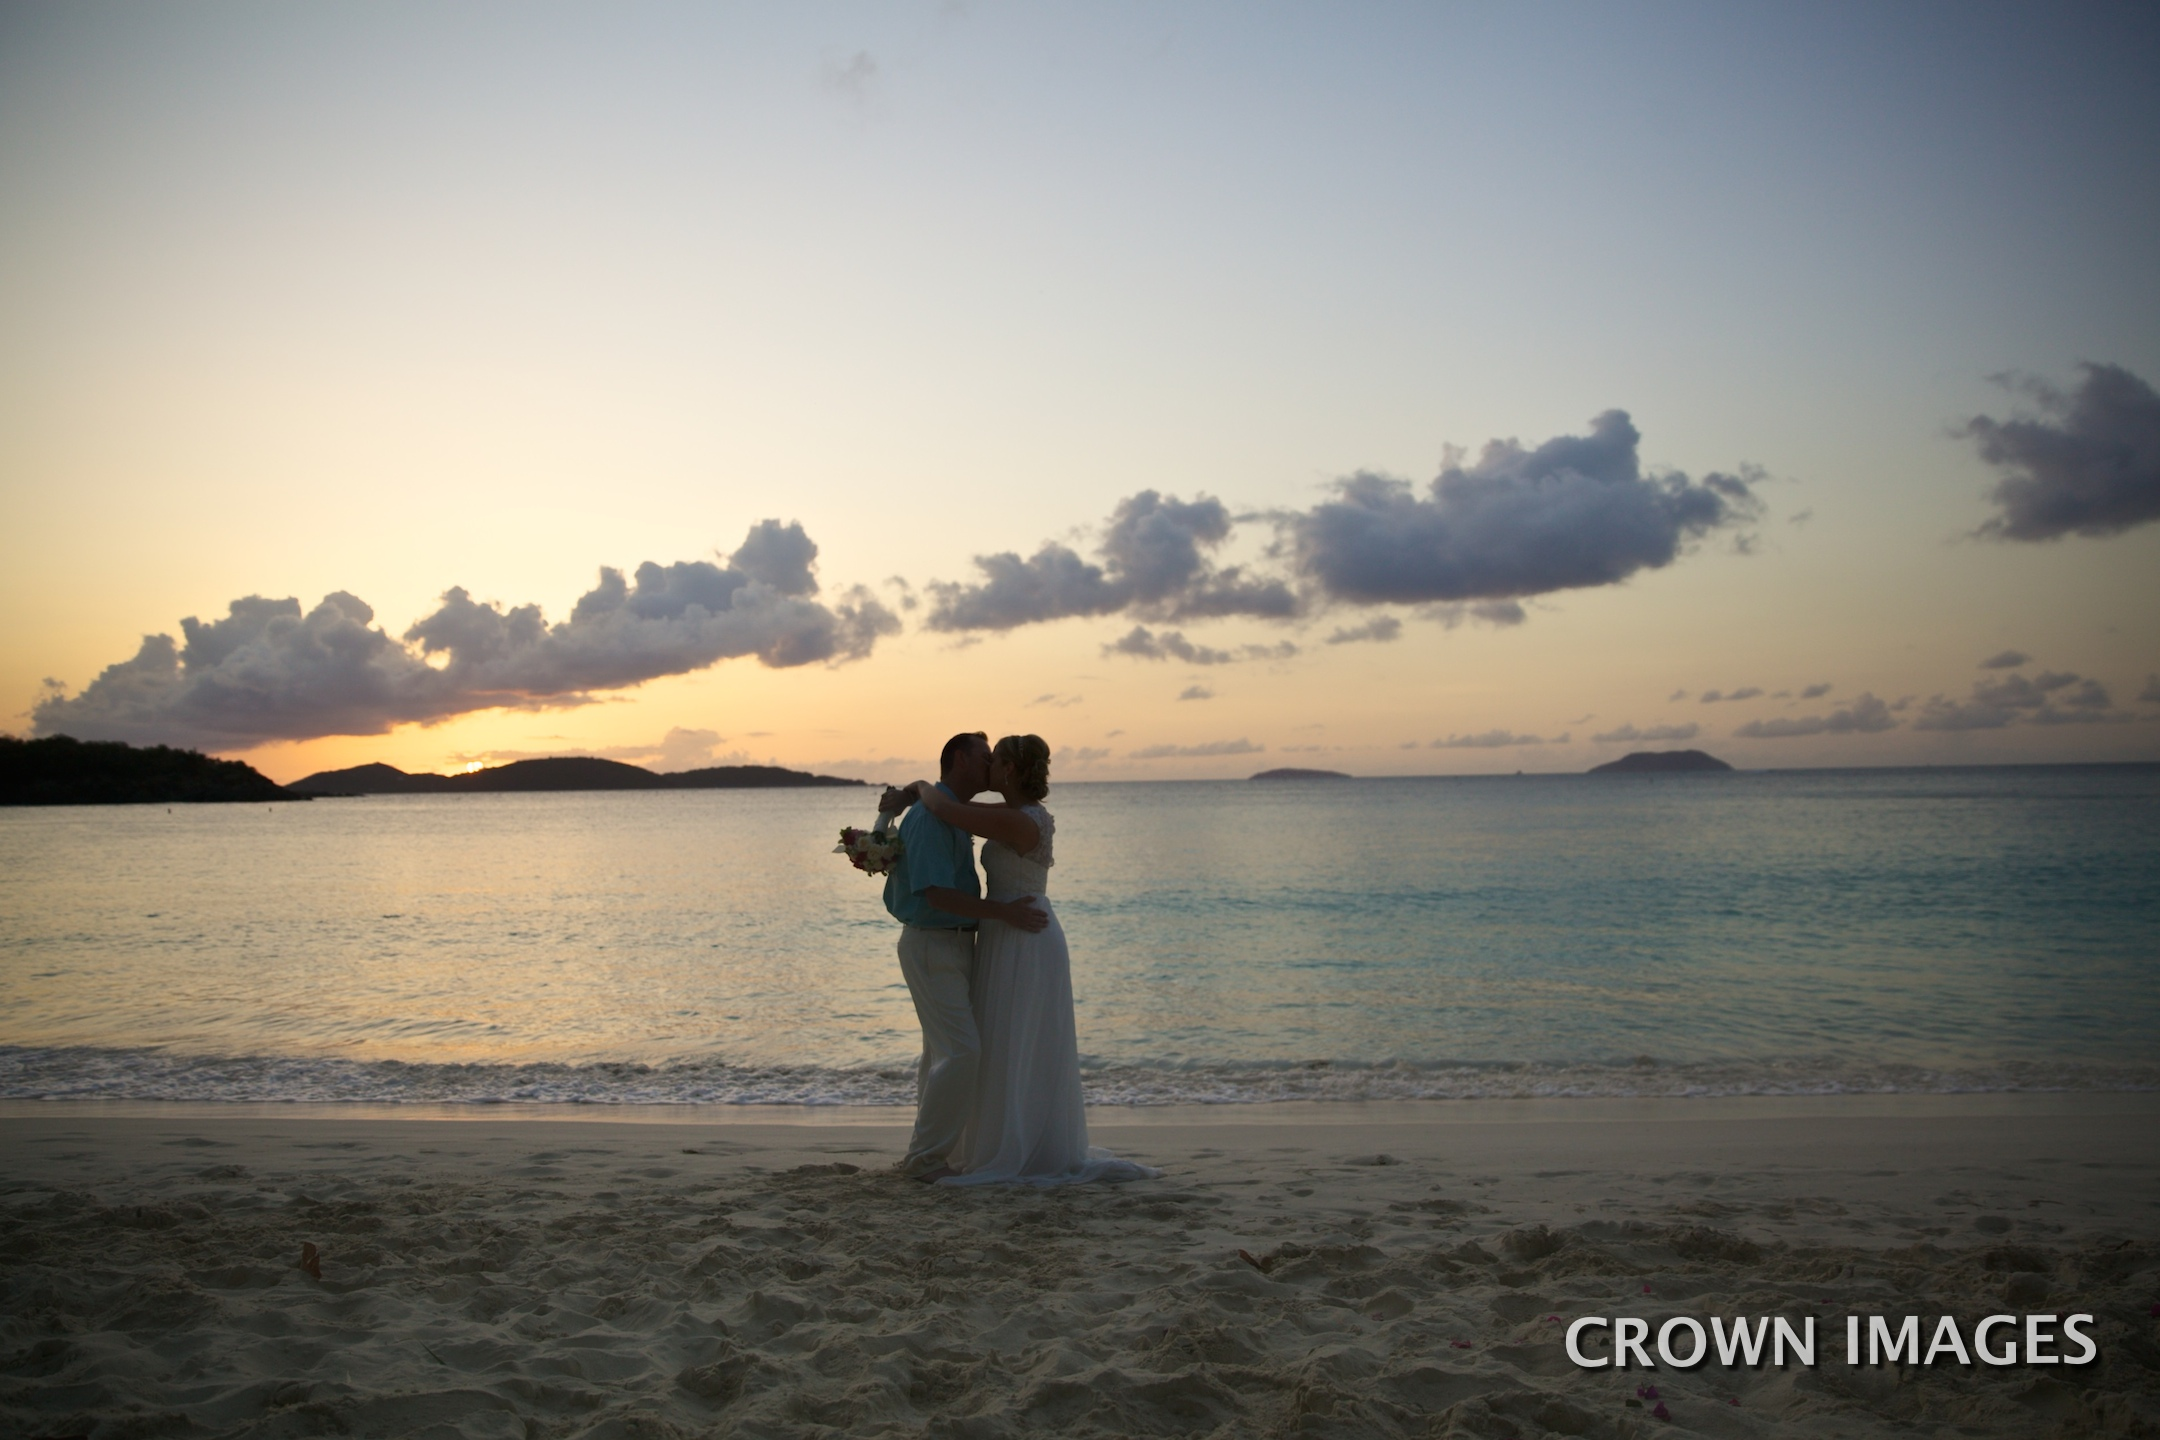 sunset wedding virgin islands photos by crown images